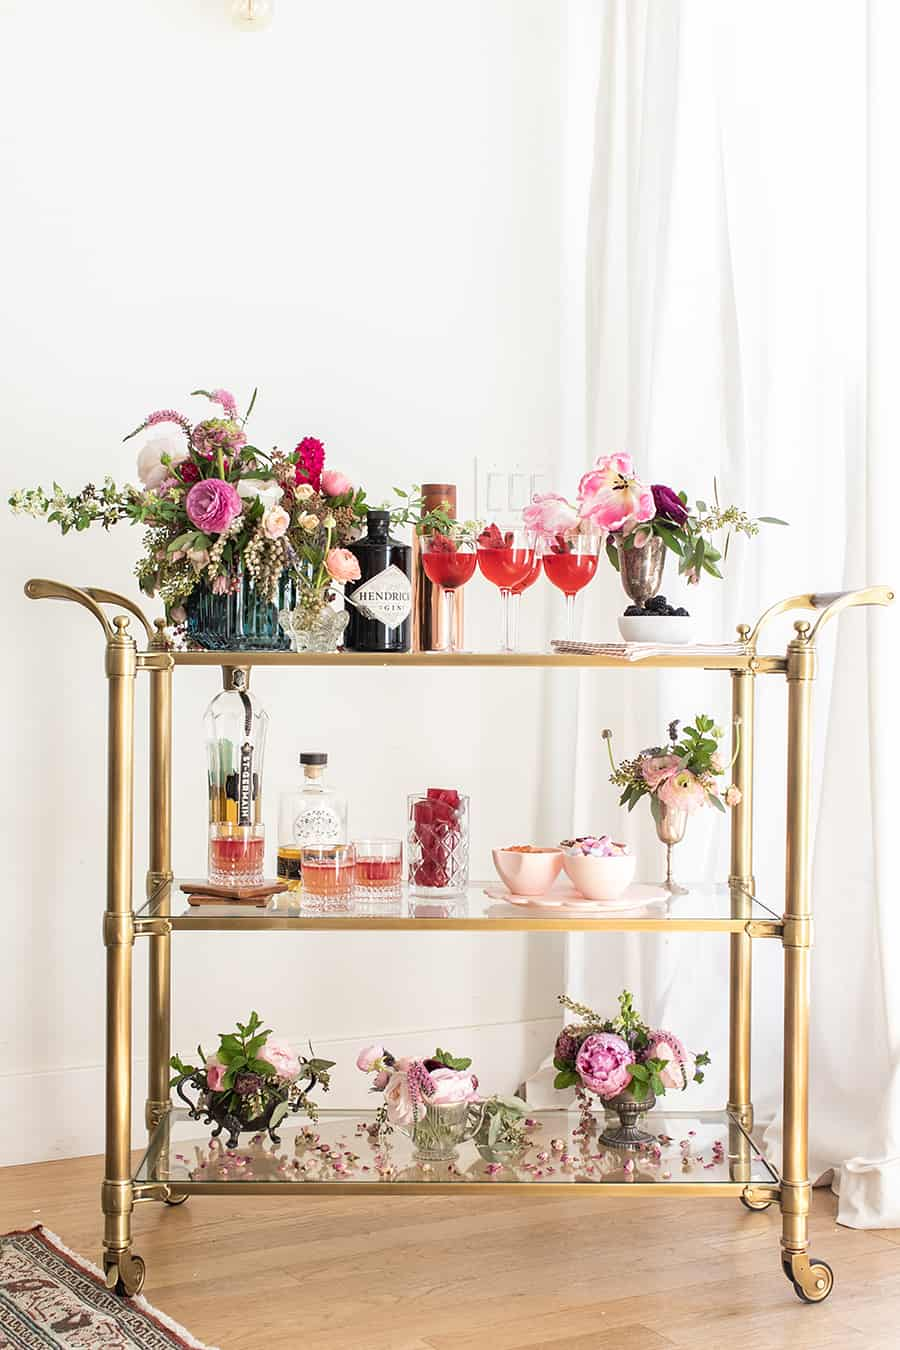 Full Gin and Flower Bar with charming details.